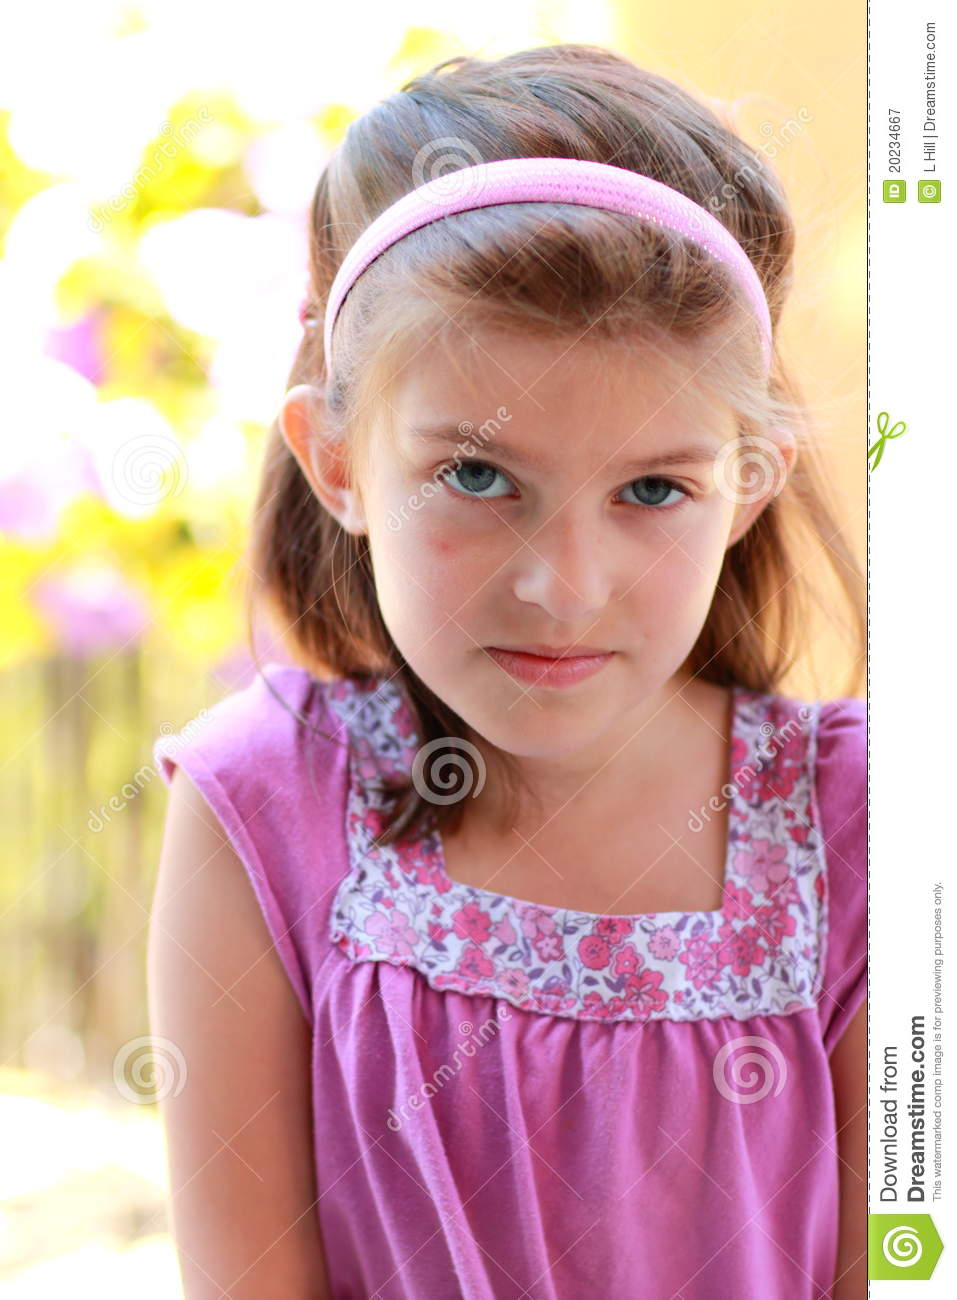 Excellent A Cute 8 Year Old Girl In Pink Royalty Free Stock Photography Short Hairstyles For Black Women Fulllsitofus